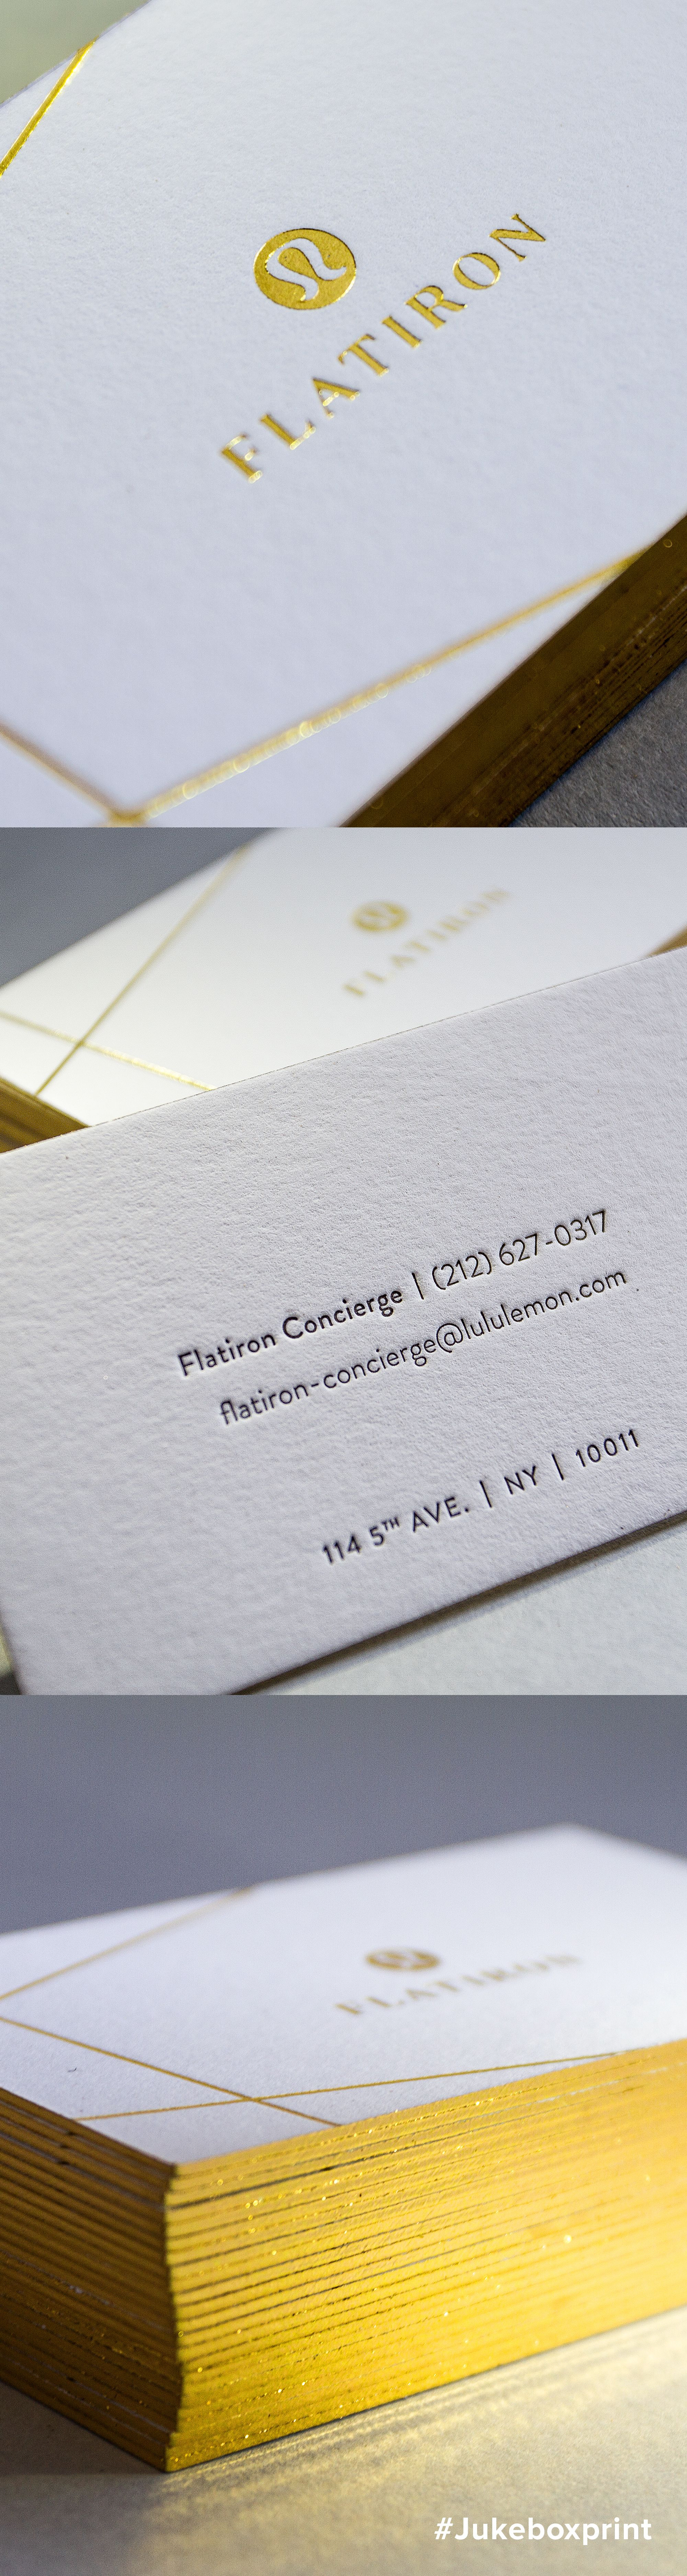 stunning gold foil and letterpress business cards produced for